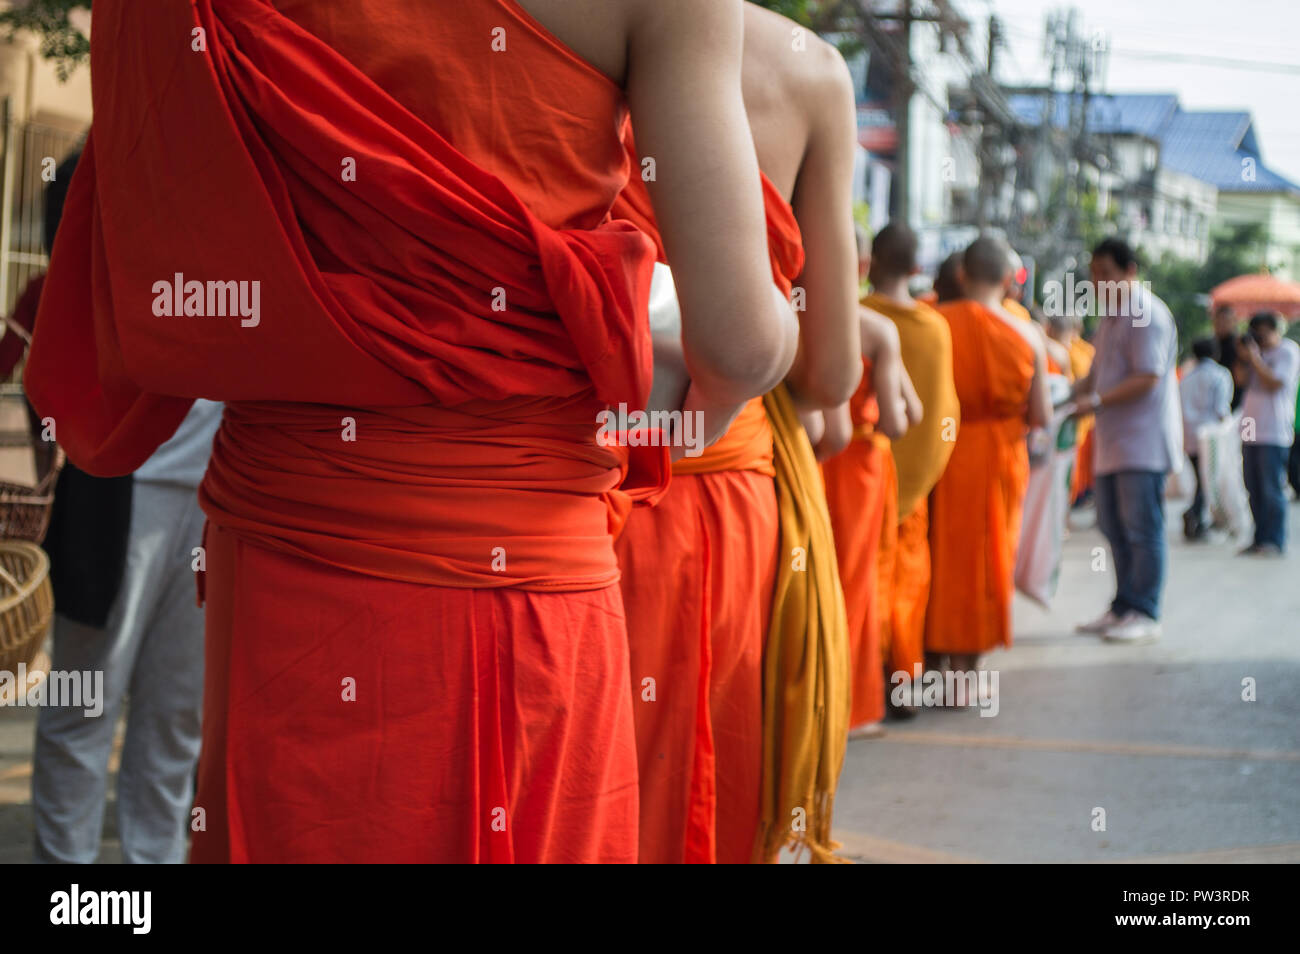 Monks Alms-round or receive food offerings moment. - Stock Image